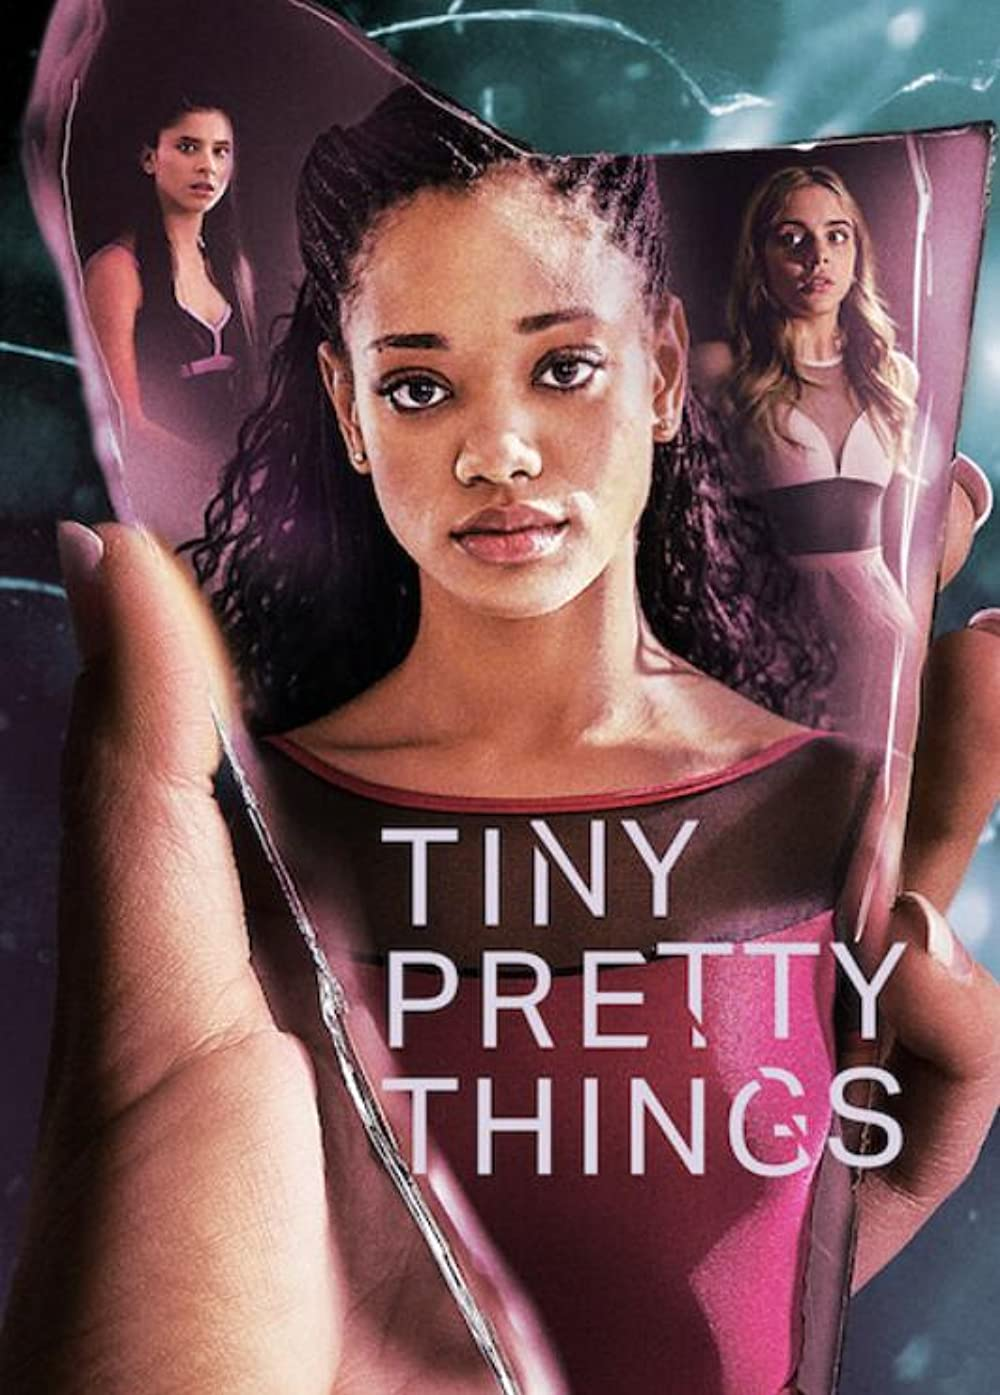 Tiny Pretty Things (2020) S01 Hindi Complete NF Series 480p HDRip ESubs 750MB